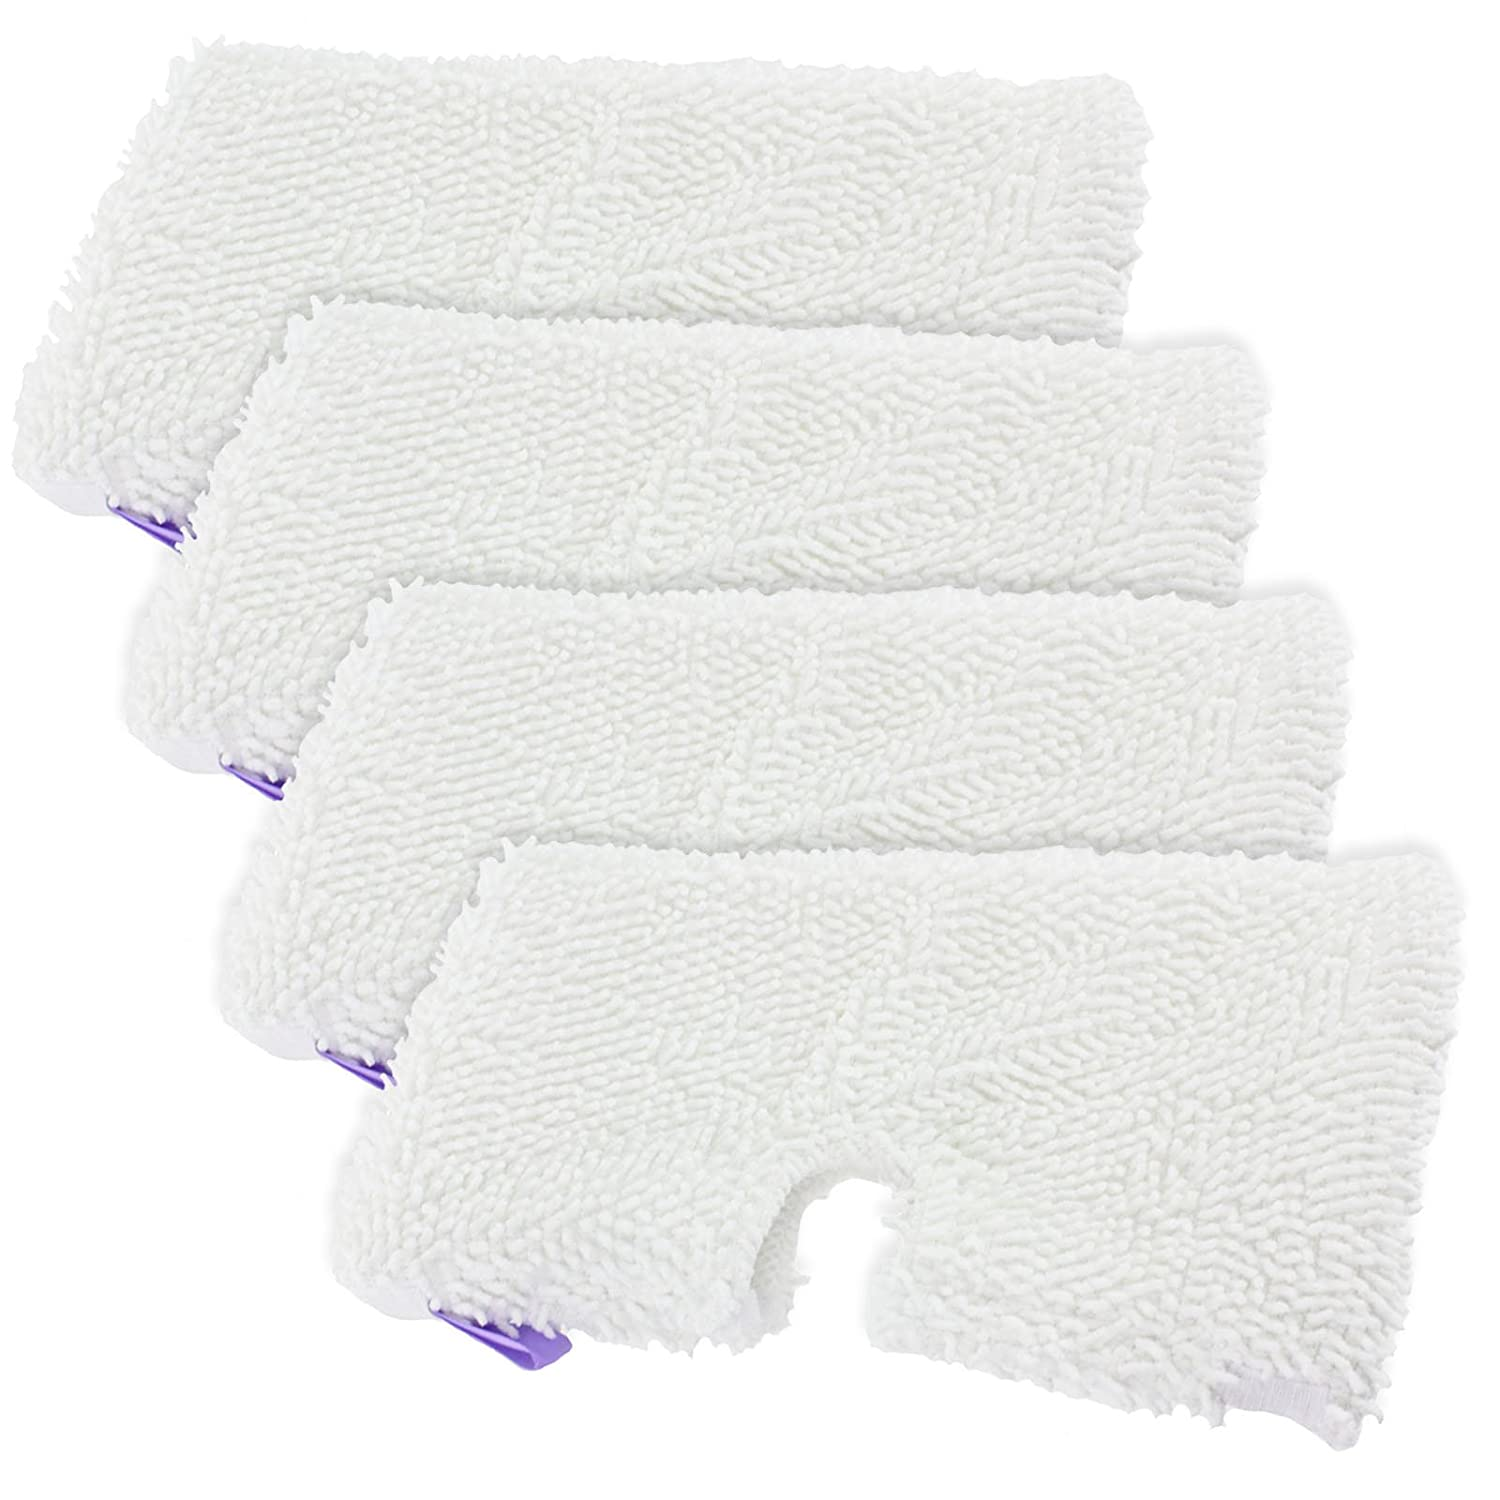 SPARES2GO Microfibre Cover Pocket Pads for Shark SM200 S502 S7000 S3101 S3250 S3251 XT3101 Steam Cleaner Mop (Pack of 4)